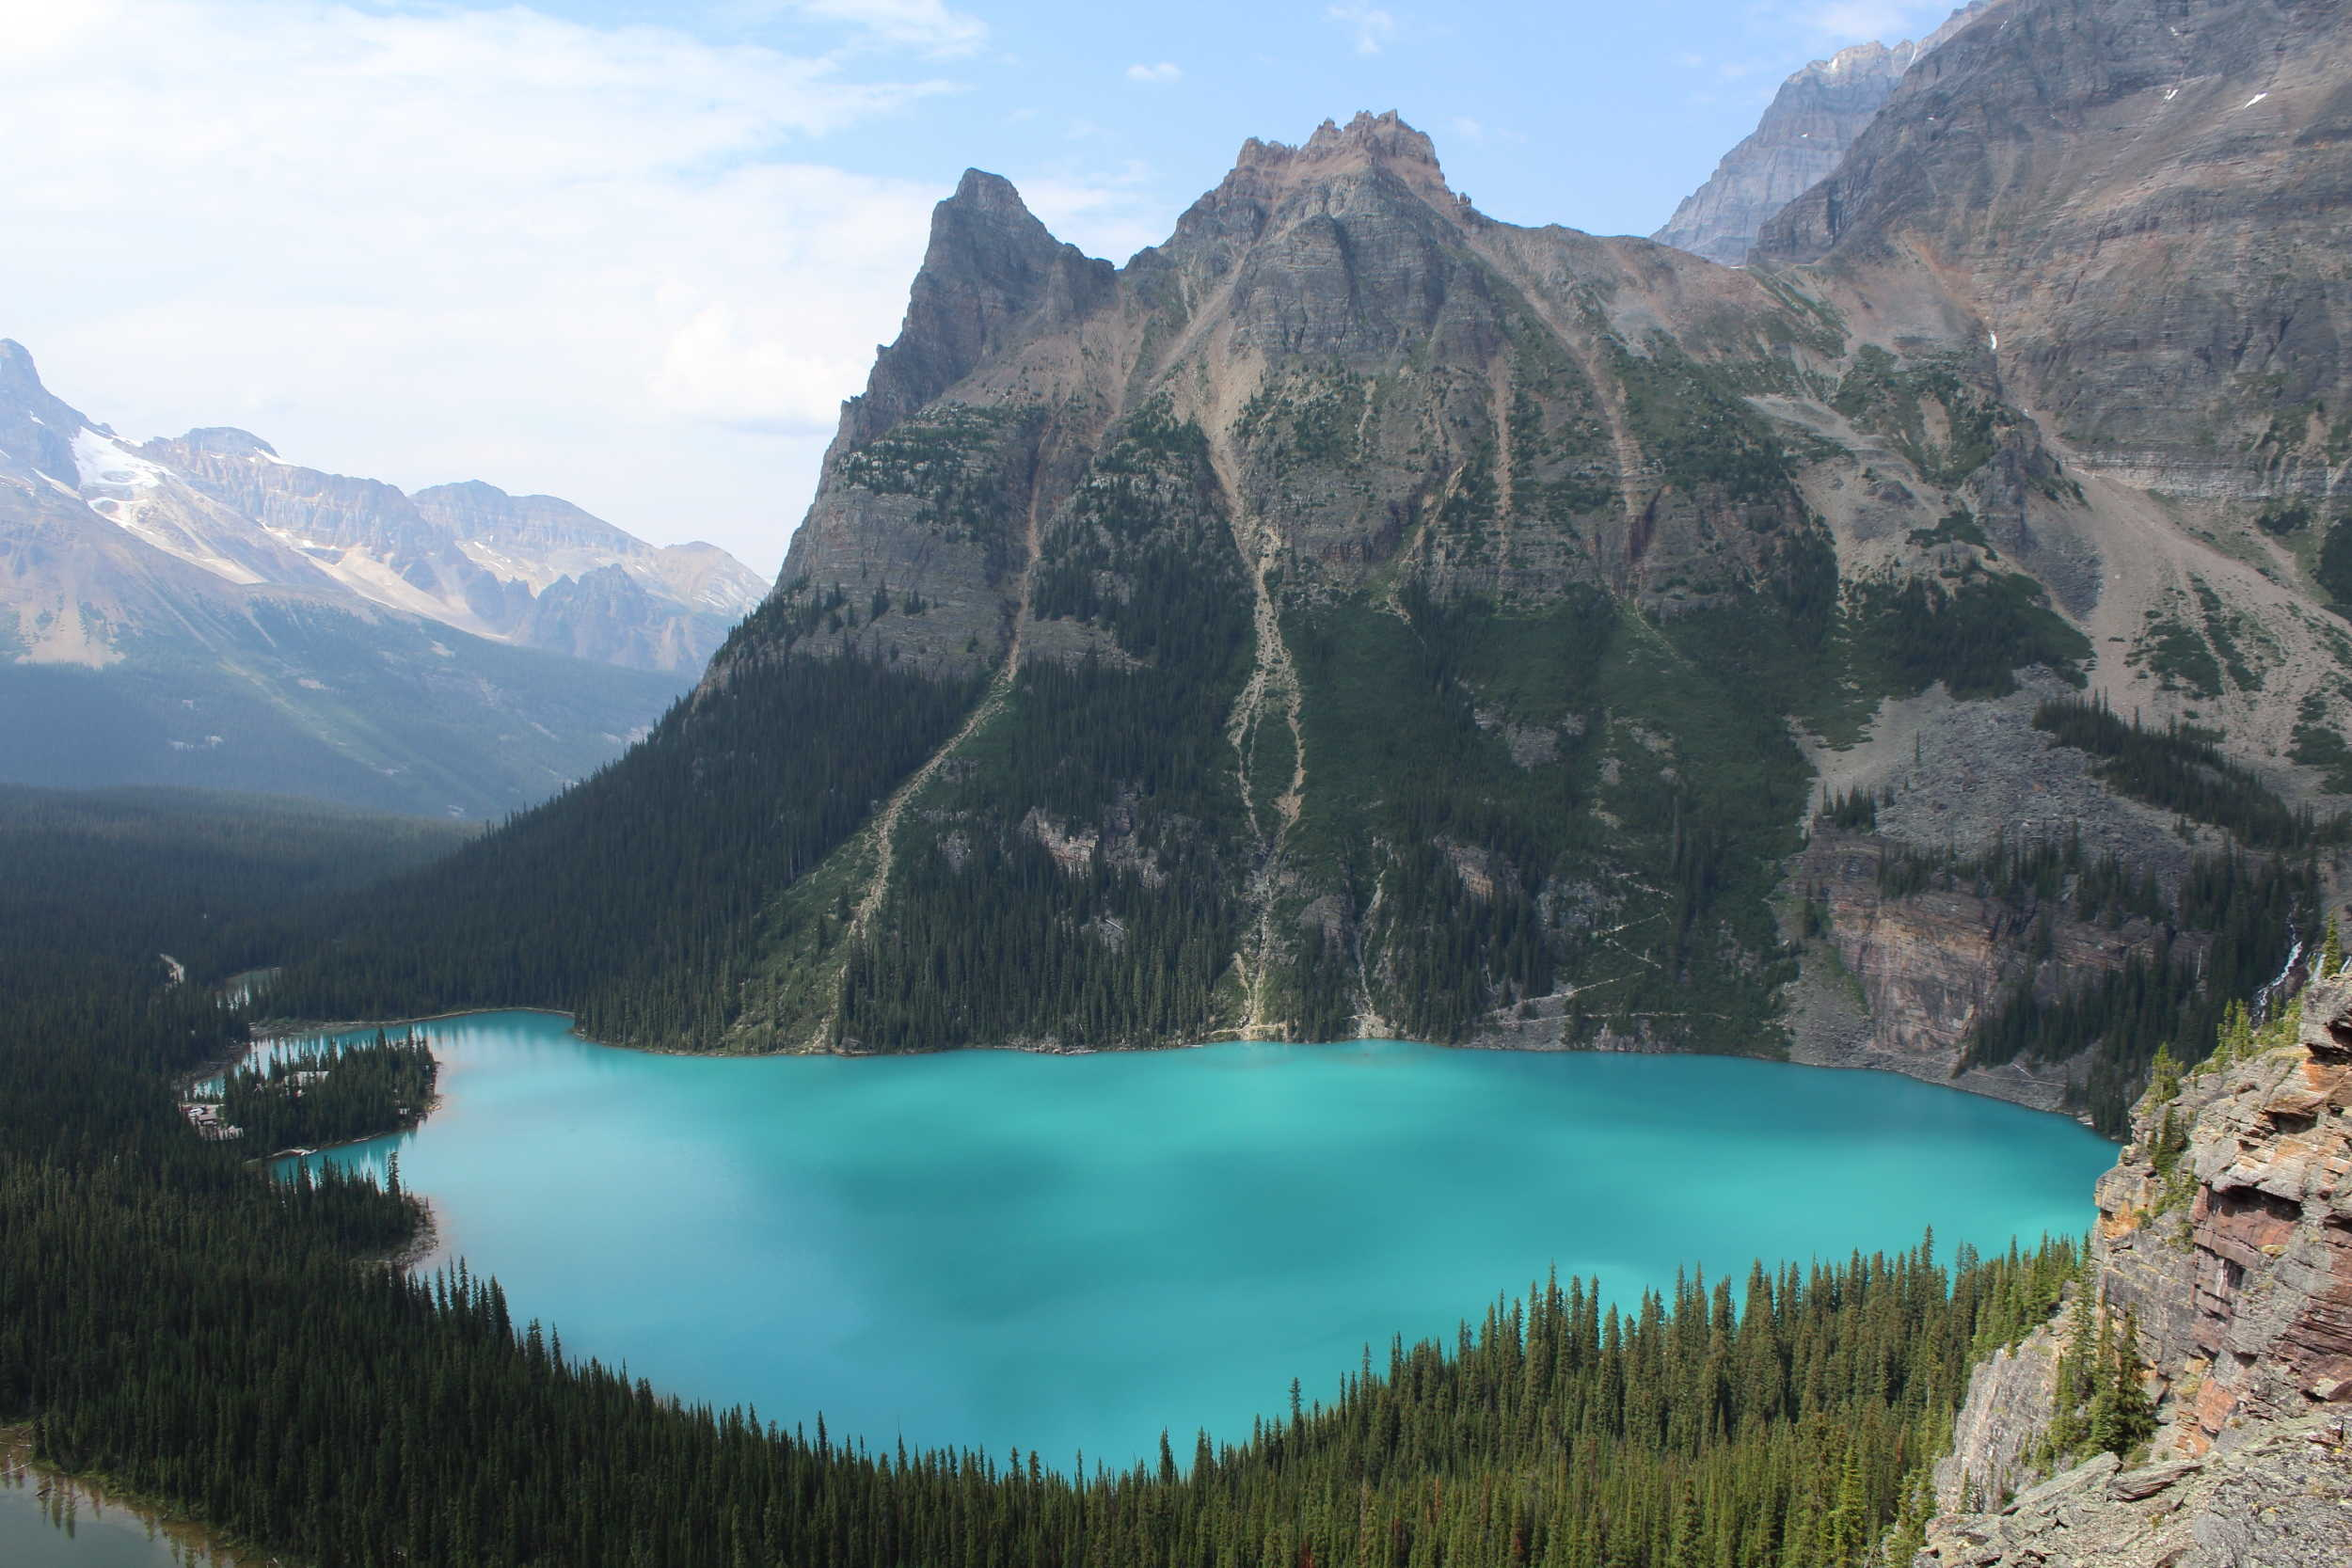 Obapin Prospect lookout over Lake O'Hara